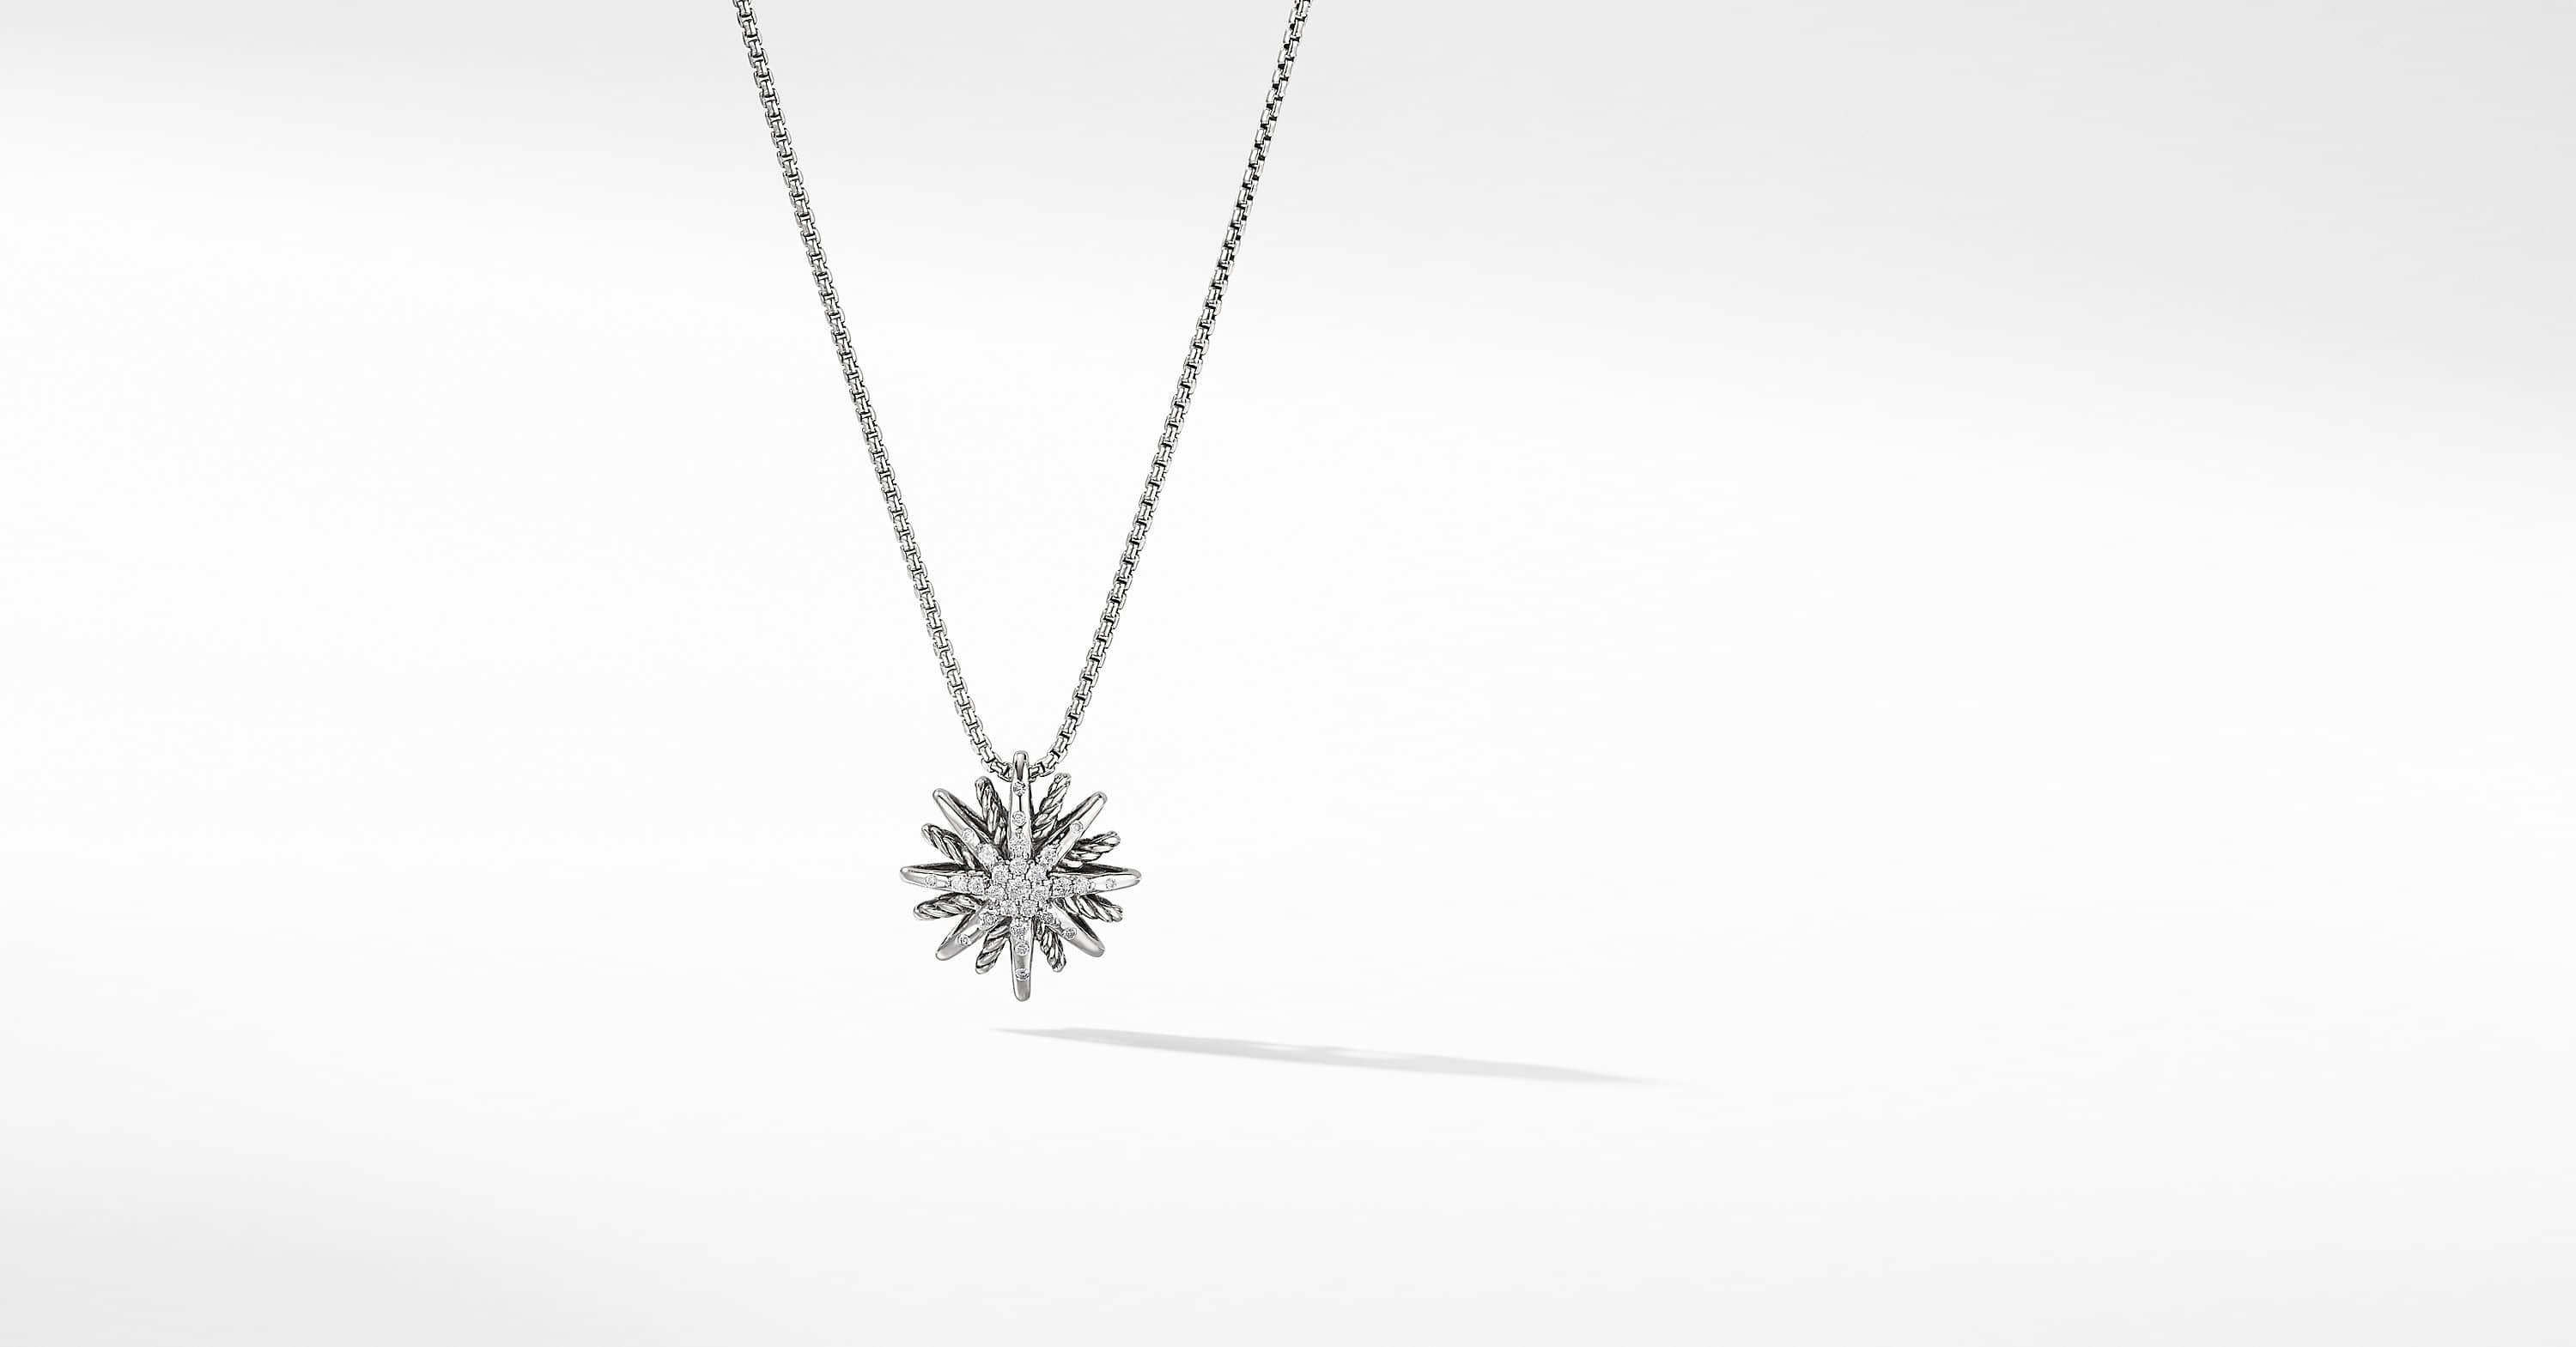 Starburst Small Pendant Necklace with Diamonds, 16mm